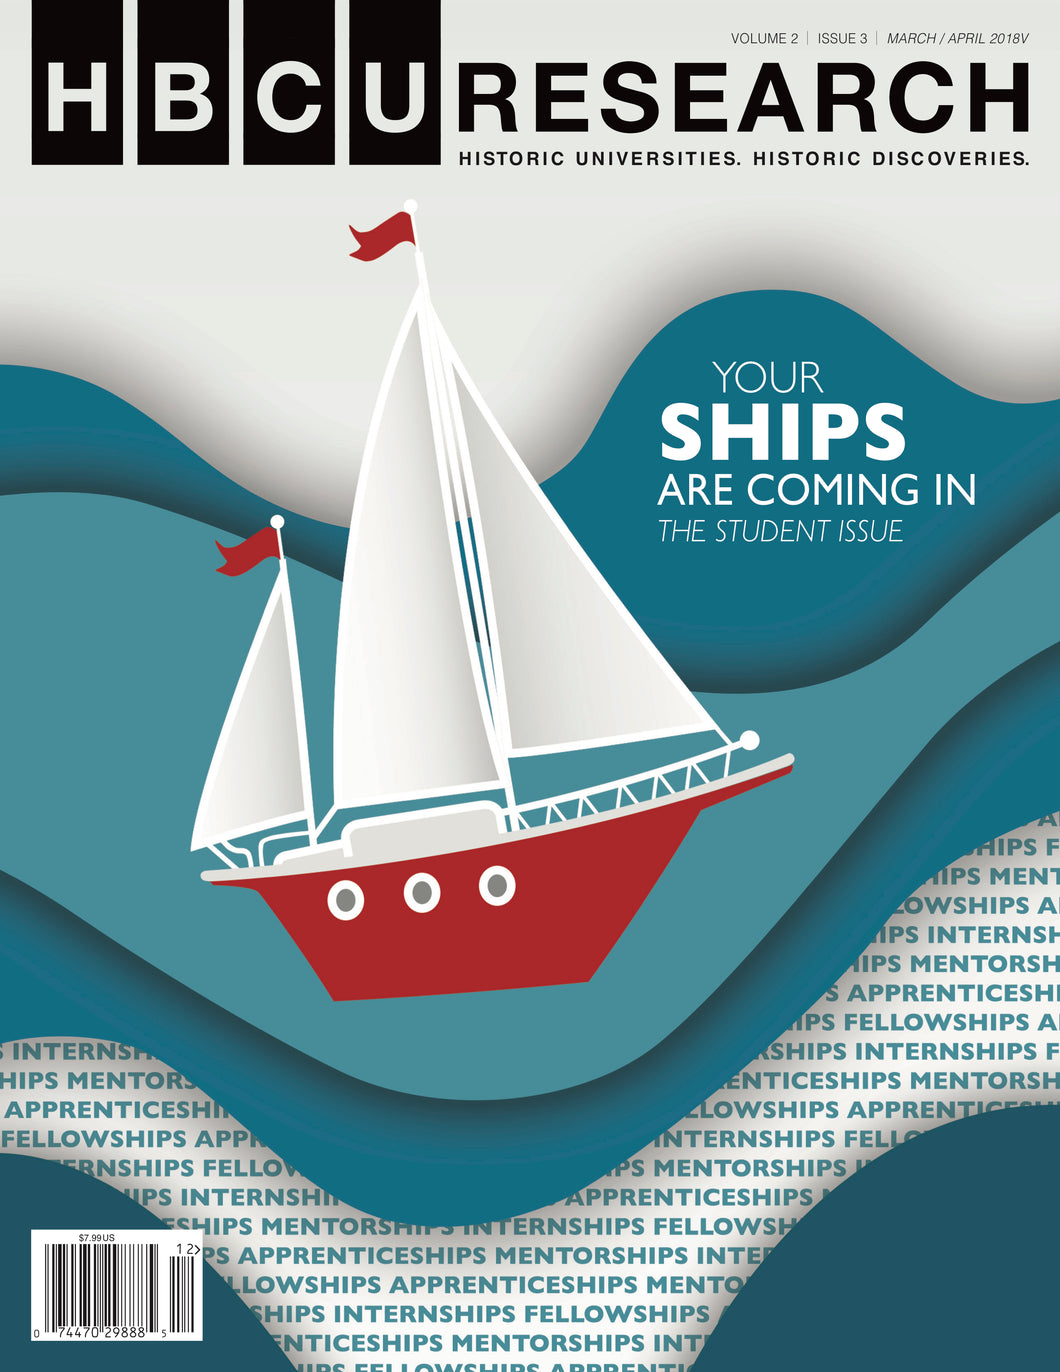 Student Issue: Your Ships Are Coming In (Bulk 100)